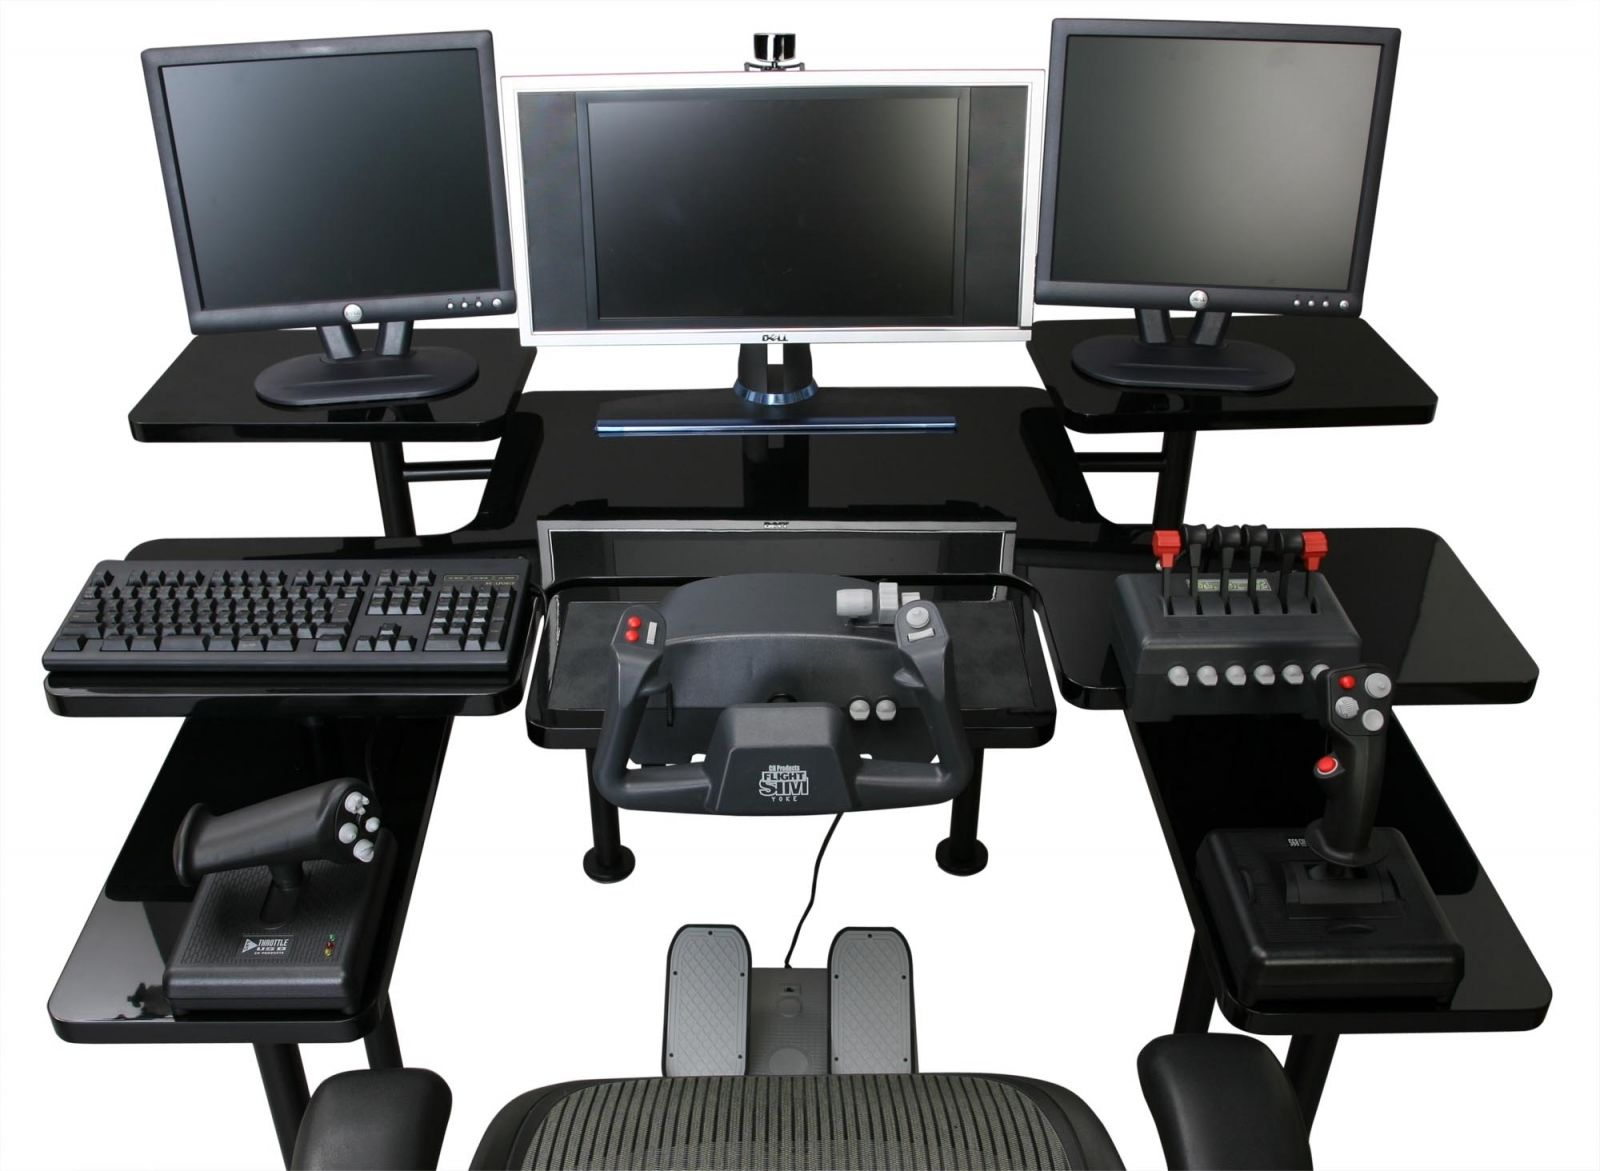 gaming chairs pc world chair covers for rent in philadelphia best custom desk setup with multiple monitors